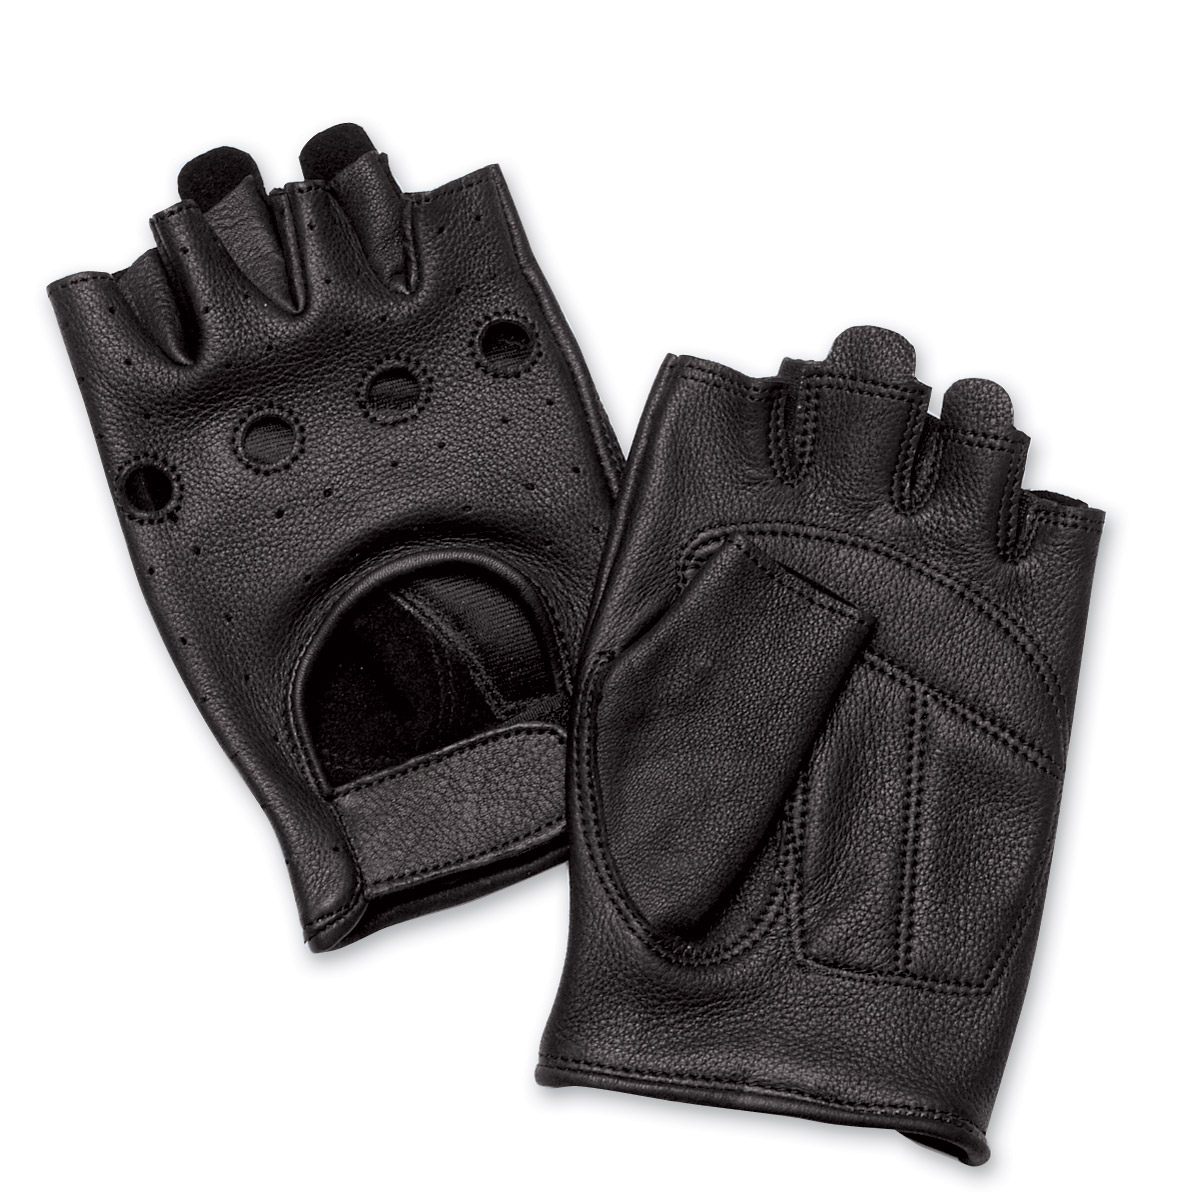 J&P Cycles® Fingerless Deerskin Gloves with Easy-Pull Tabs